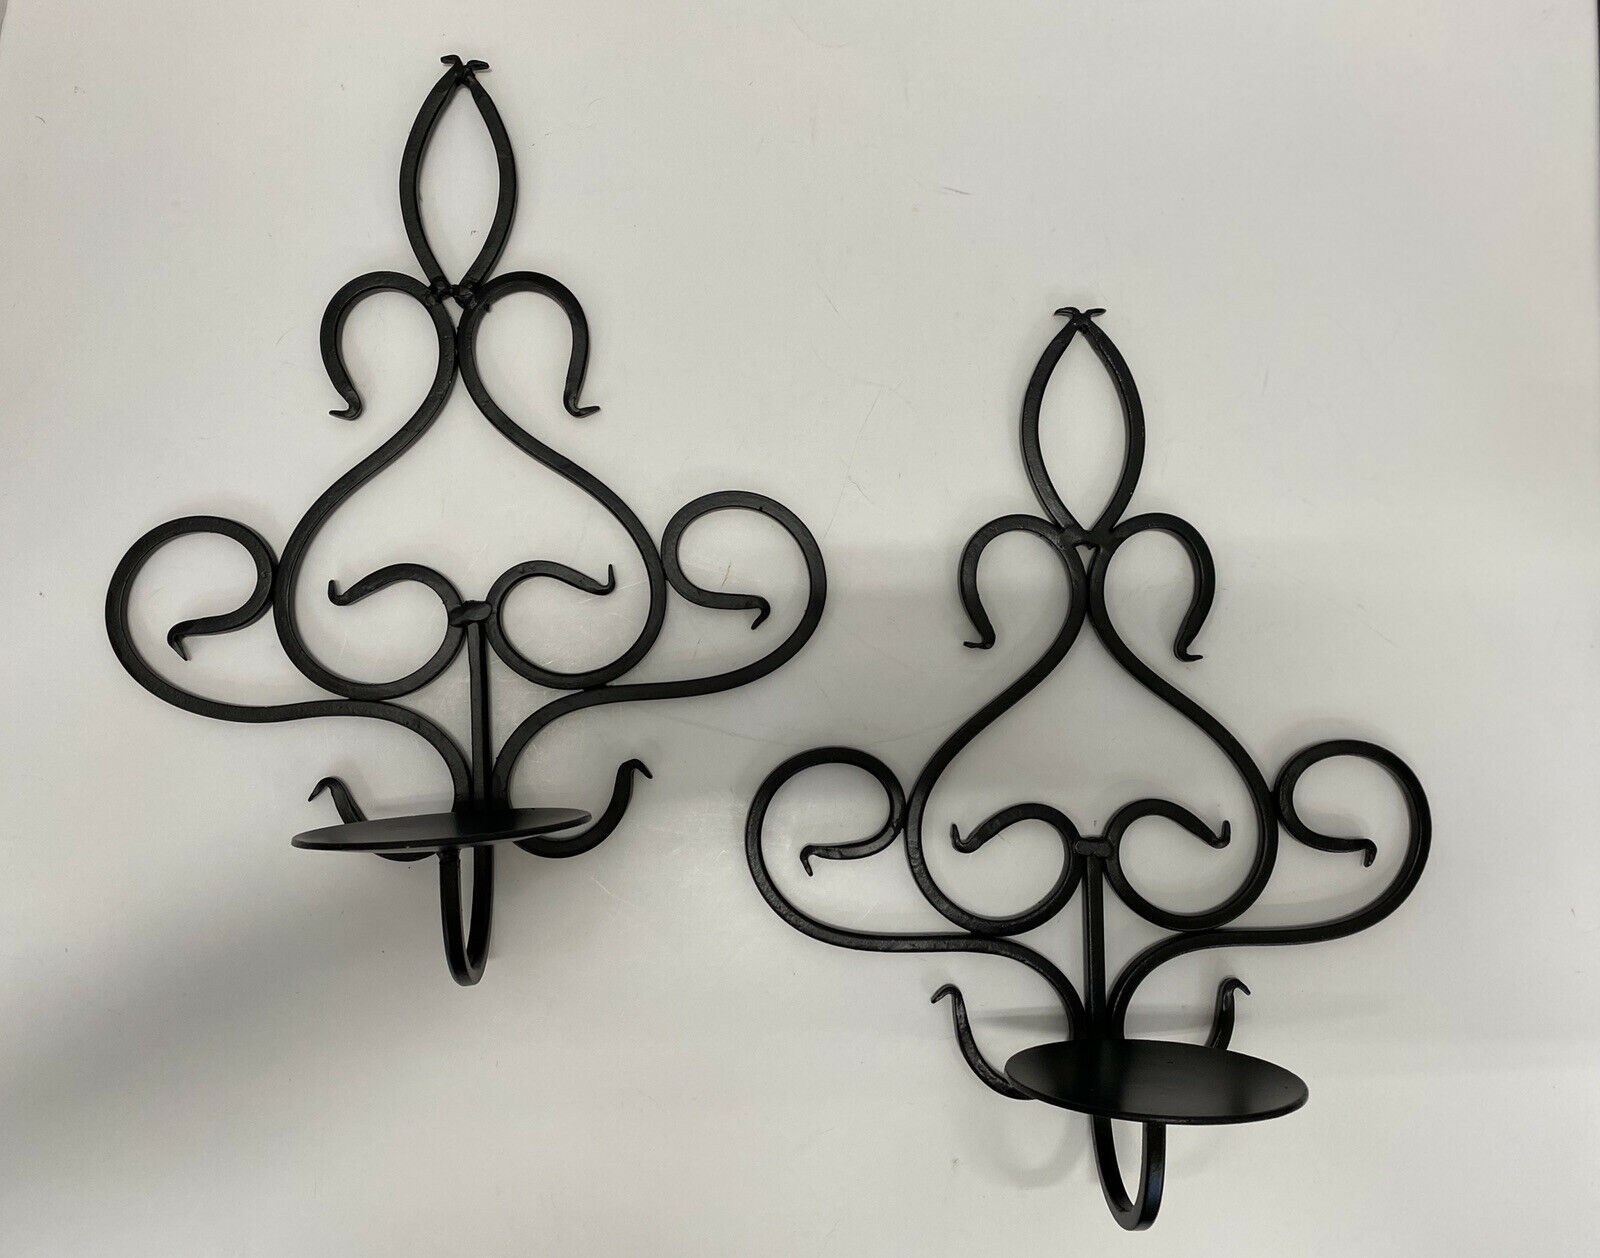 Set Of 2 Black Metal Wrought Iron Scroll Wall Sconces Candle Holders Home Decor For Sale Online